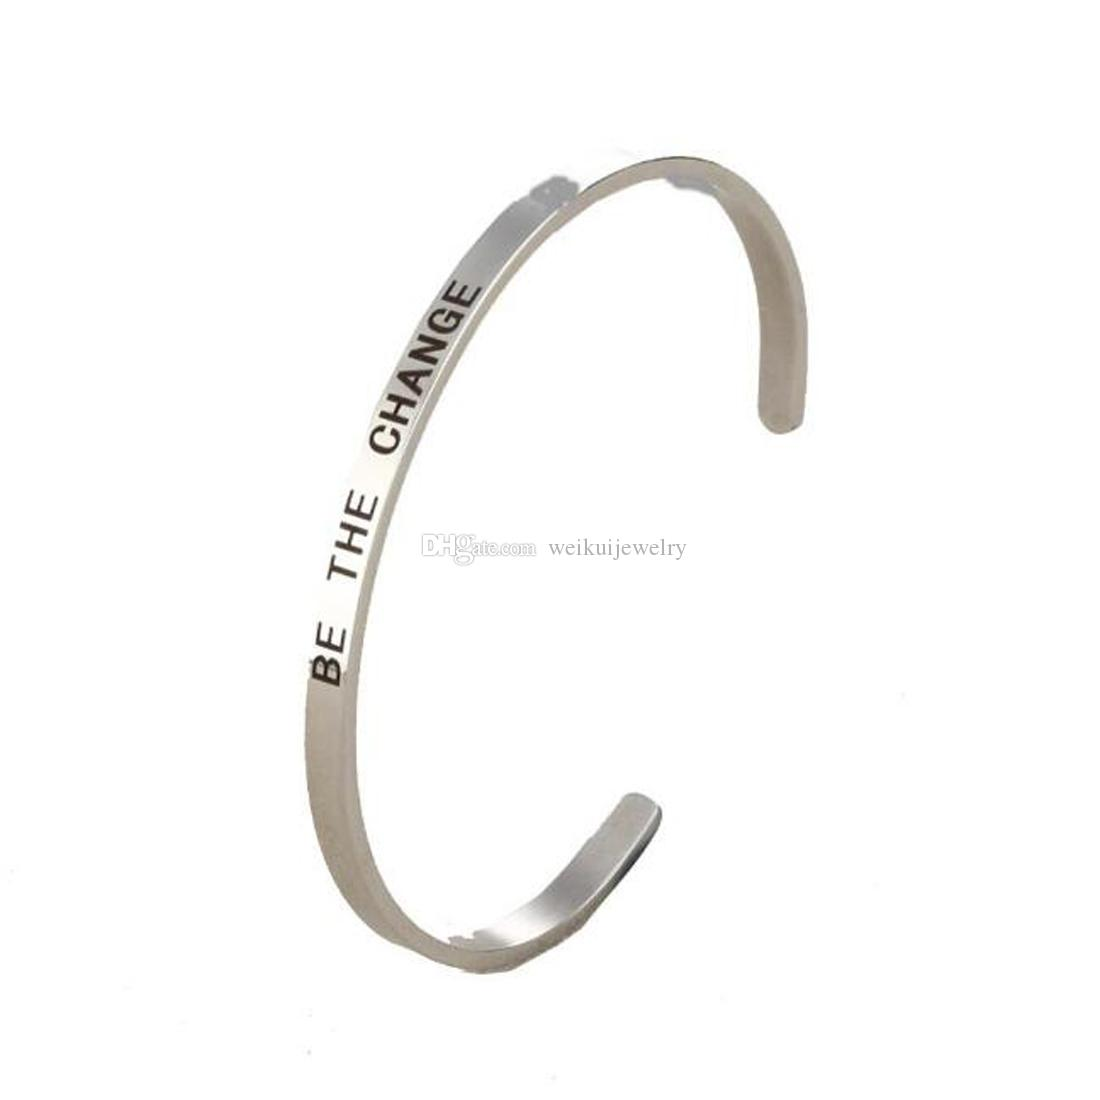 Fashion Personalized Stainless Steel Engraving for She Inspirational Cuff Bangle charm Bracelet Gift -Be the change